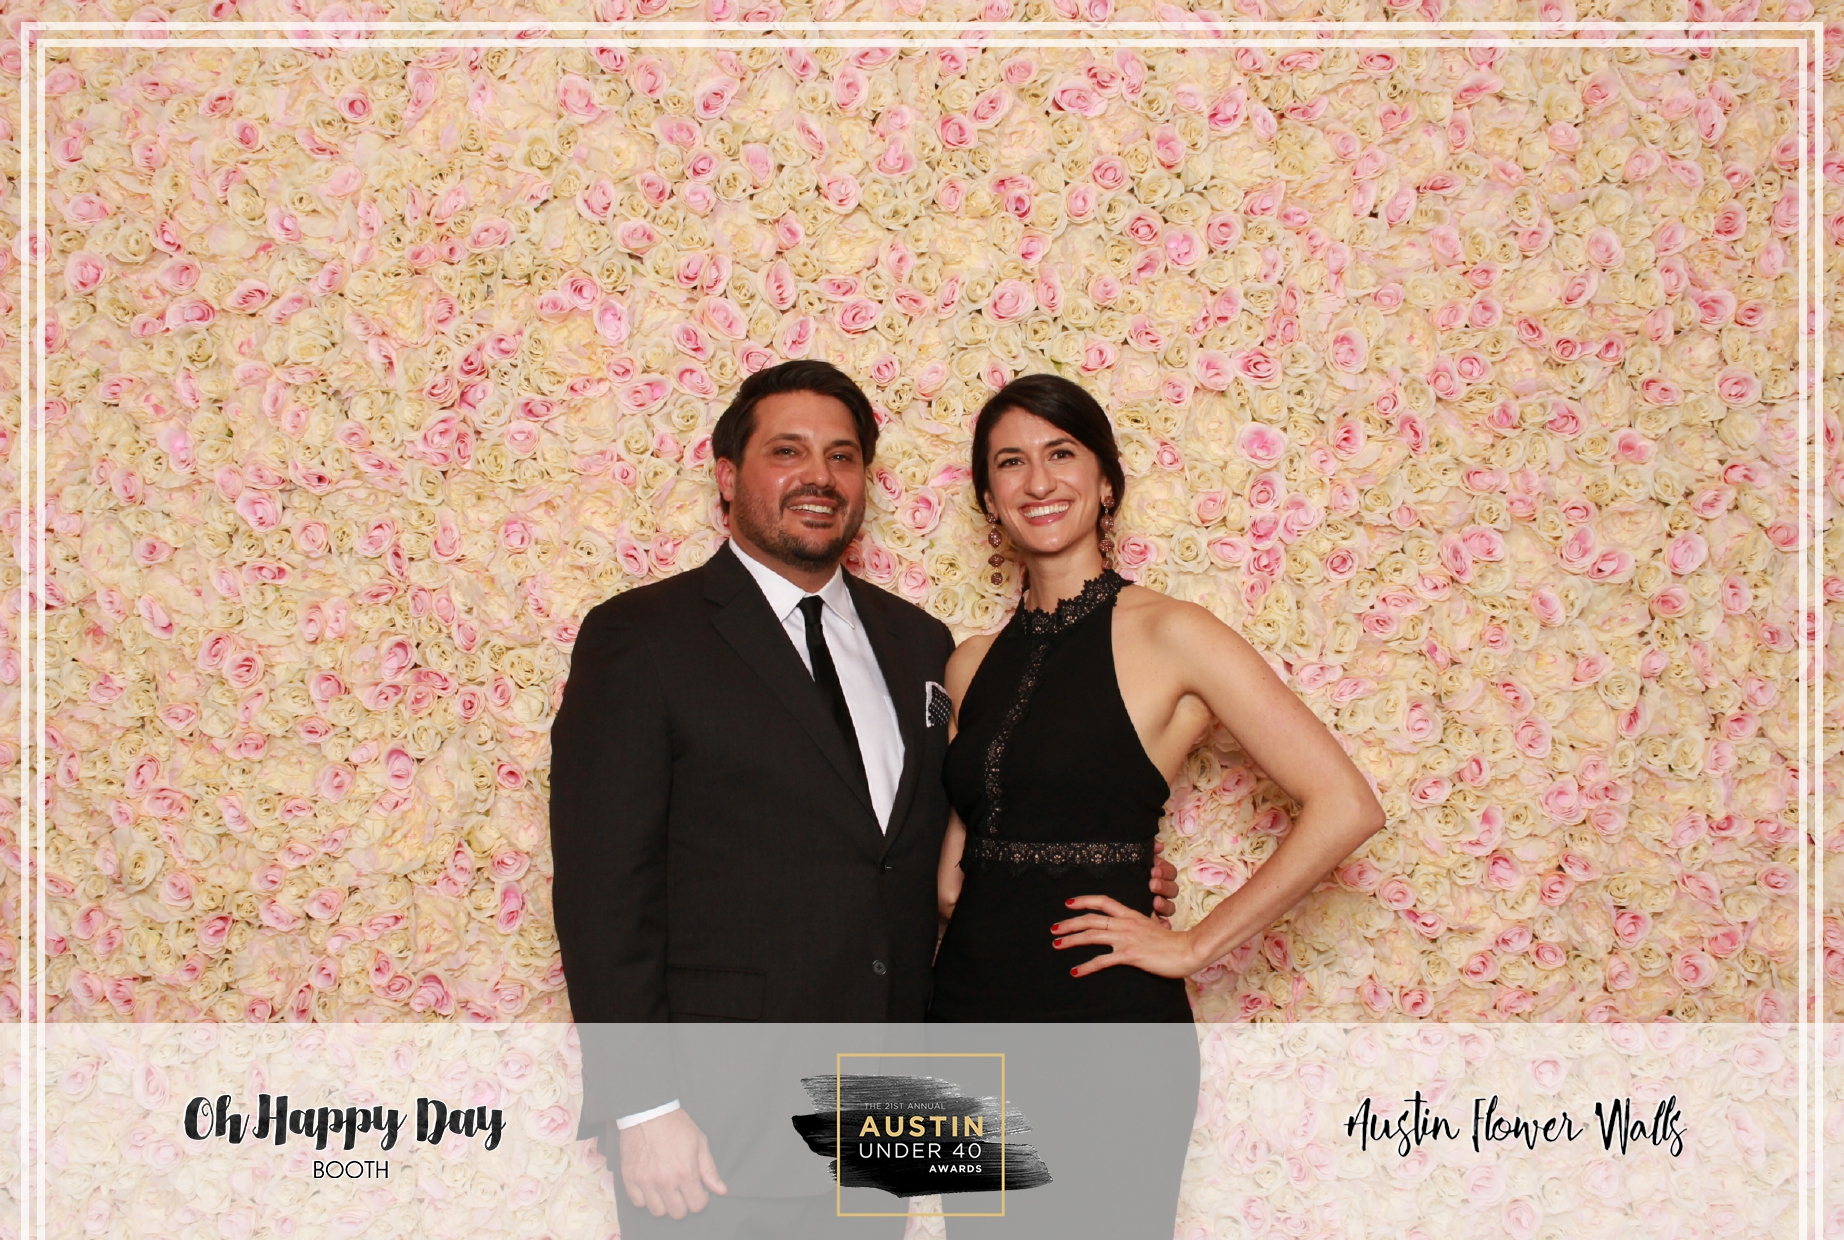 Oh Happy Day Booth - Austin Under 40-116.jpg